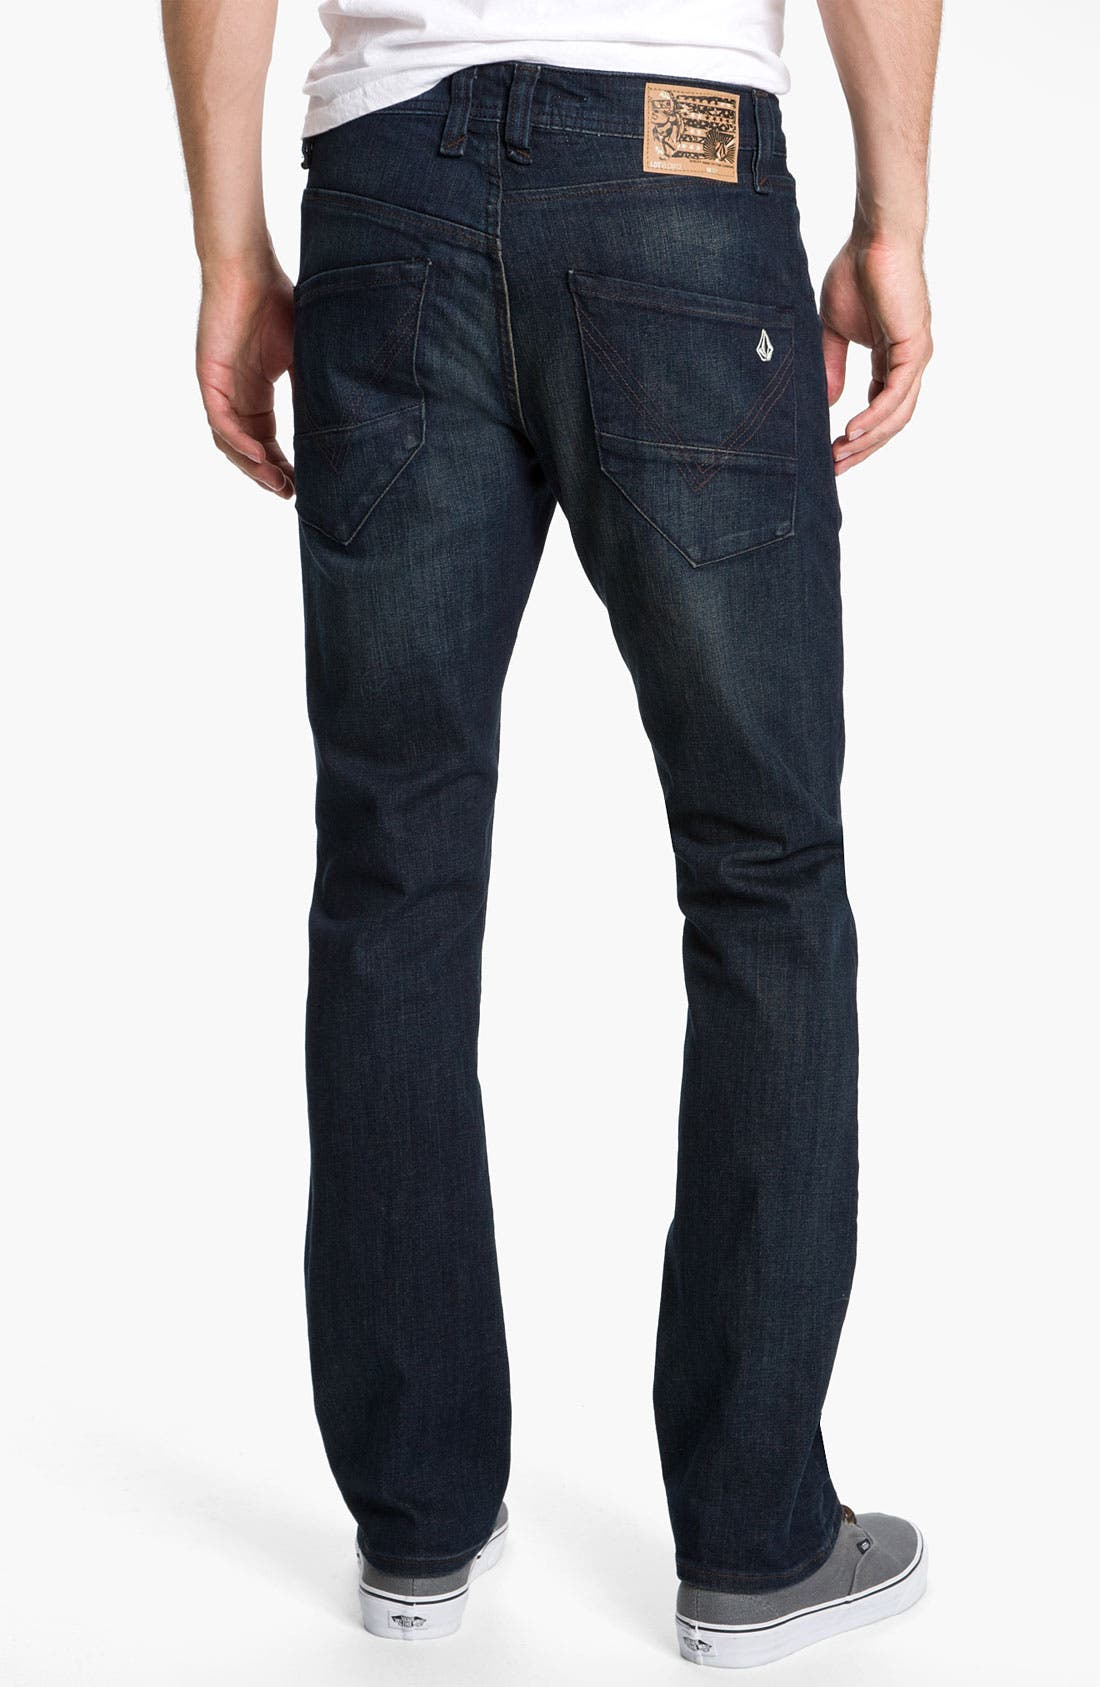 Main Image - Volcom 'Nova' Slim Straight Leg Jeans (Dark Room Stretch) (Online Exclusive)